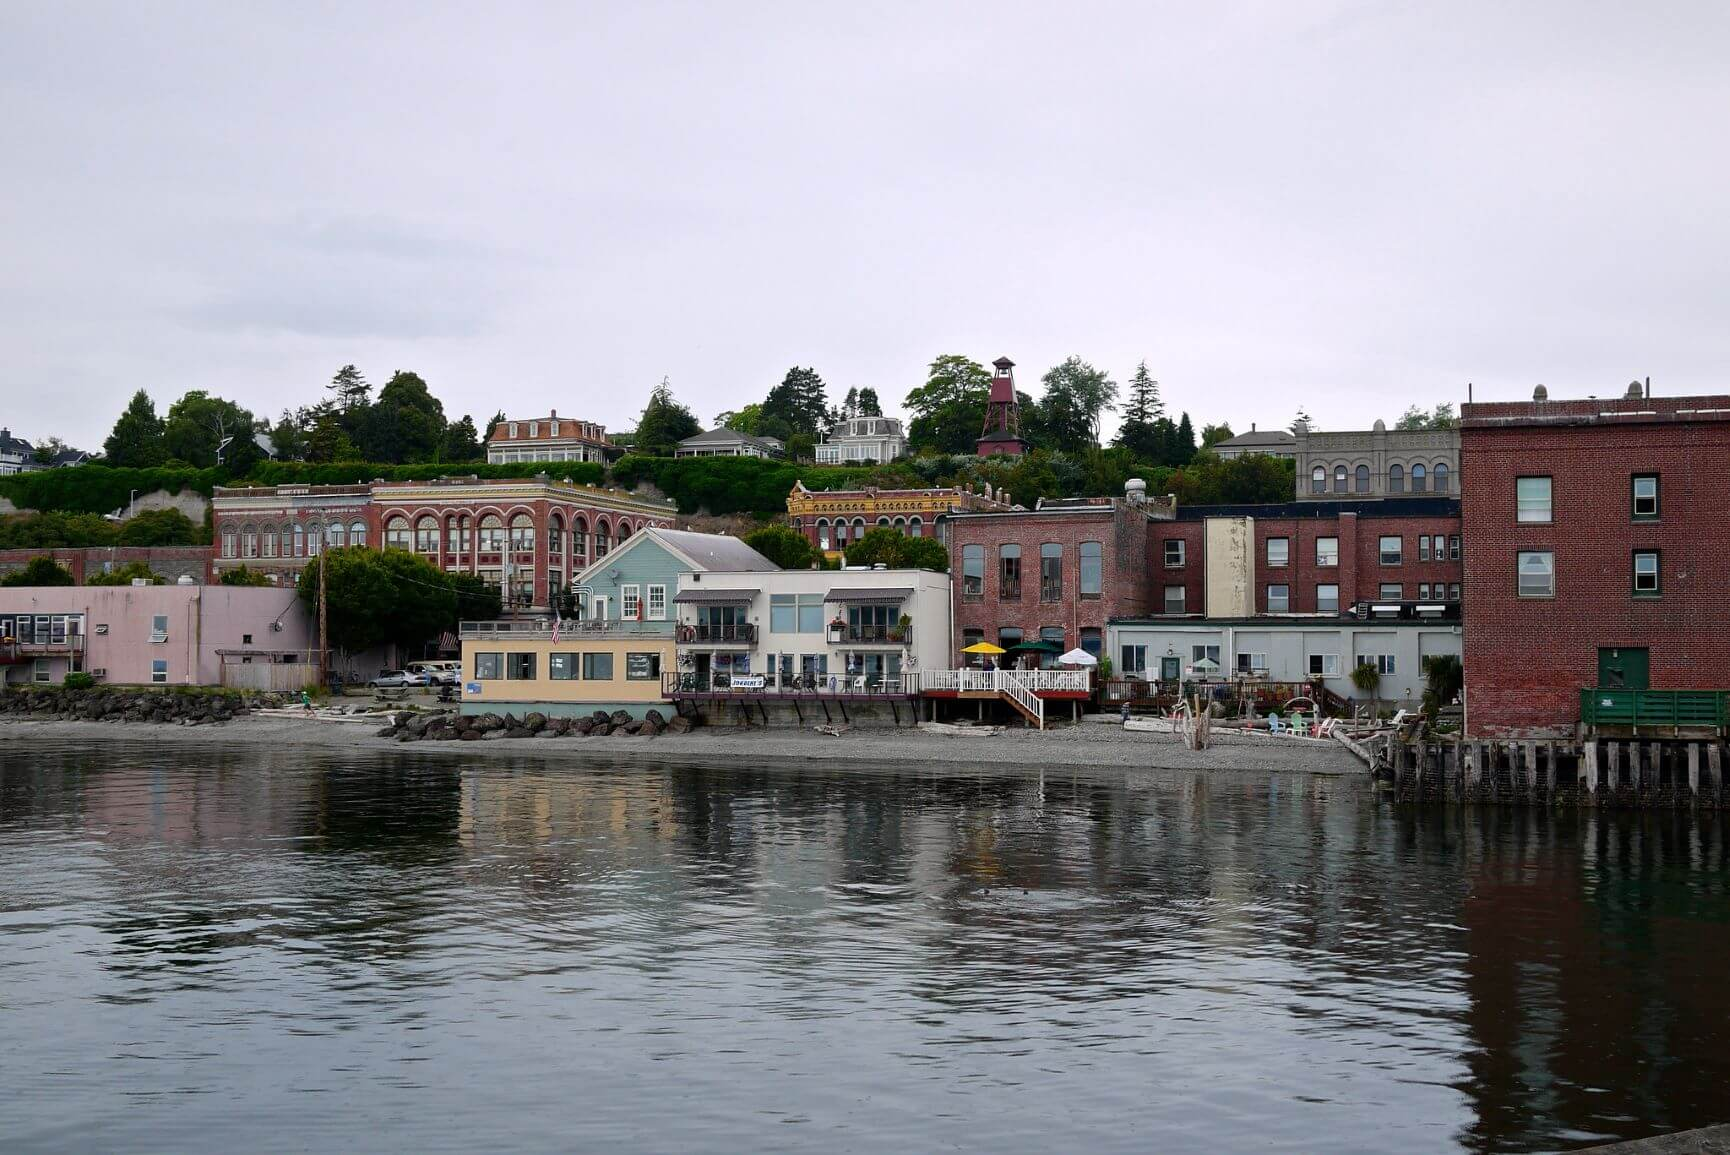 Port Townsend in Washington State